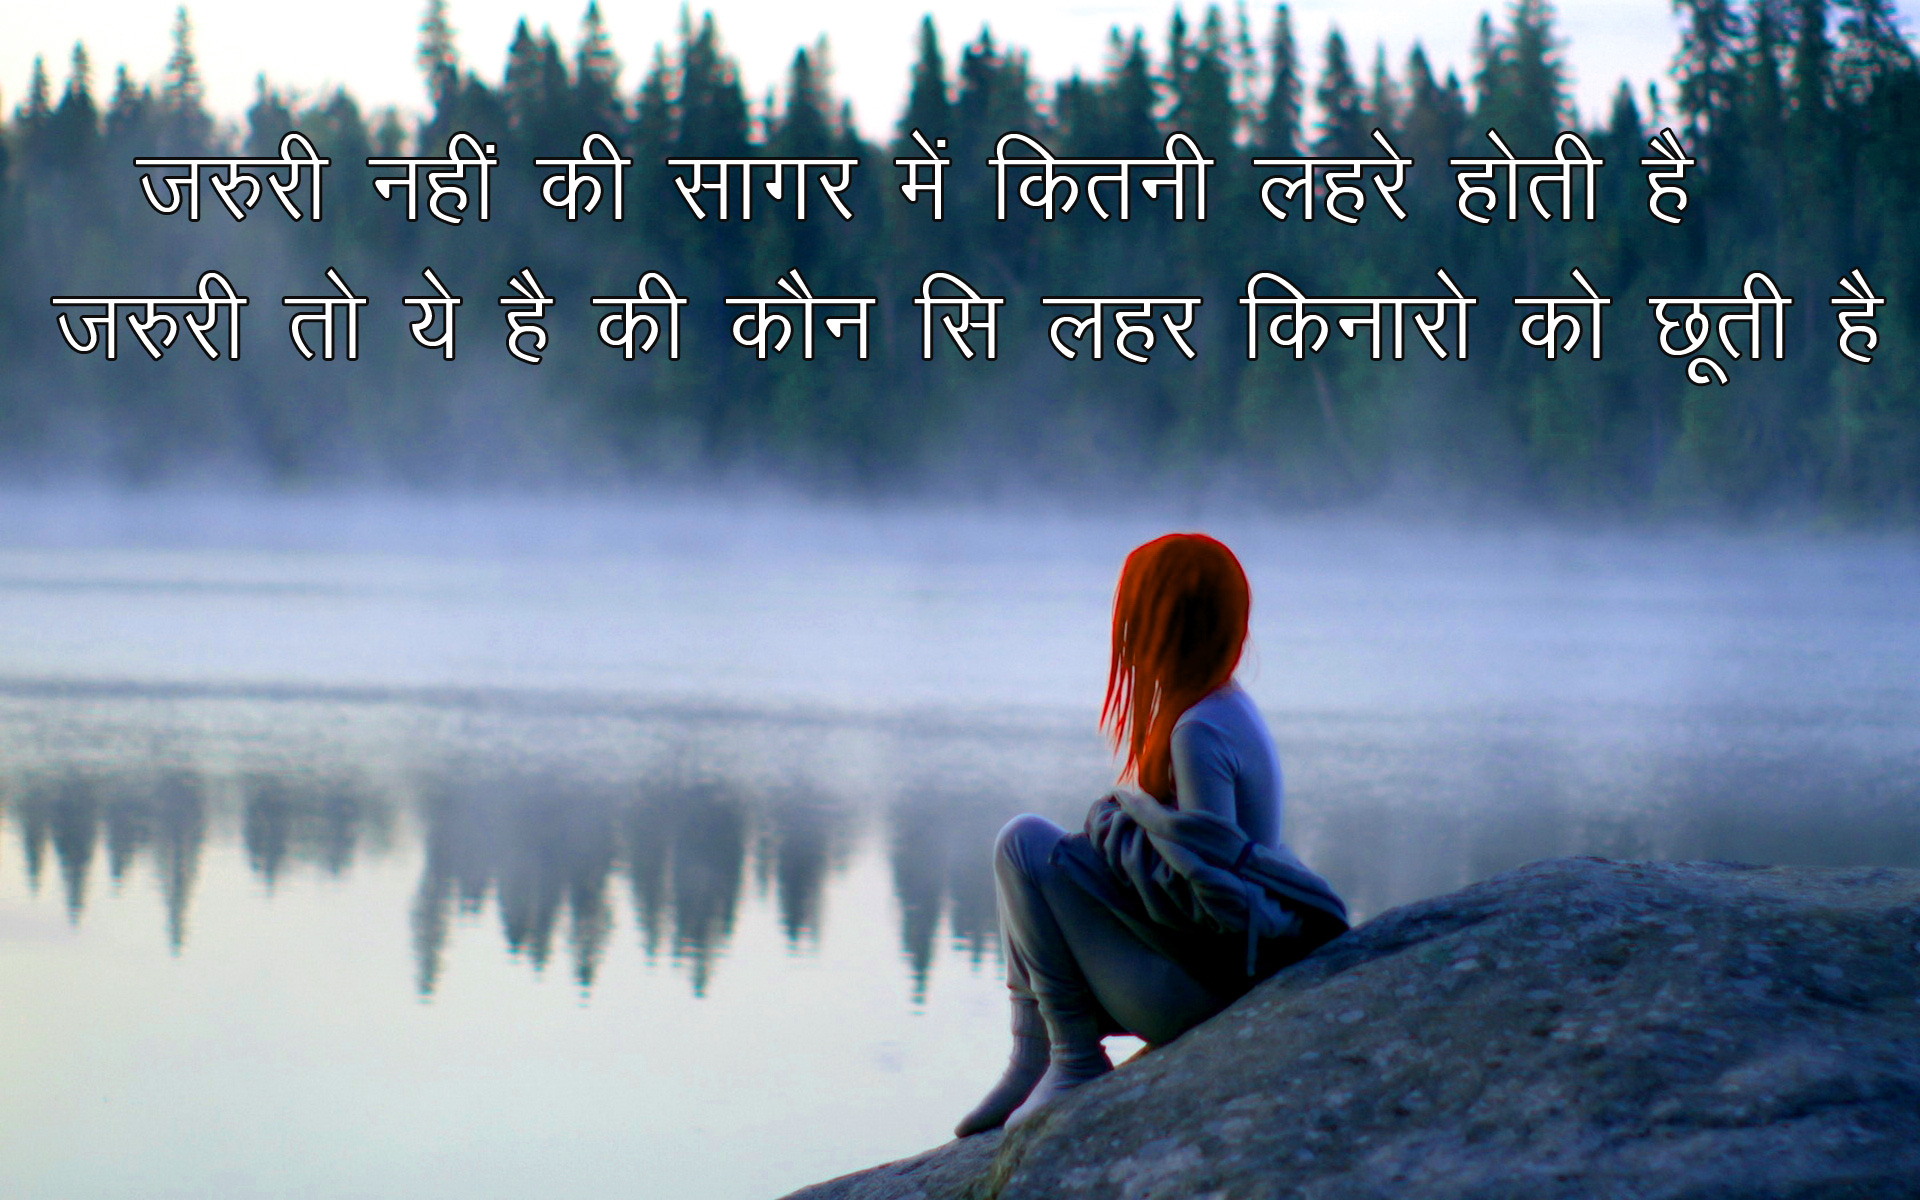 Best Hindi Shayari Pics